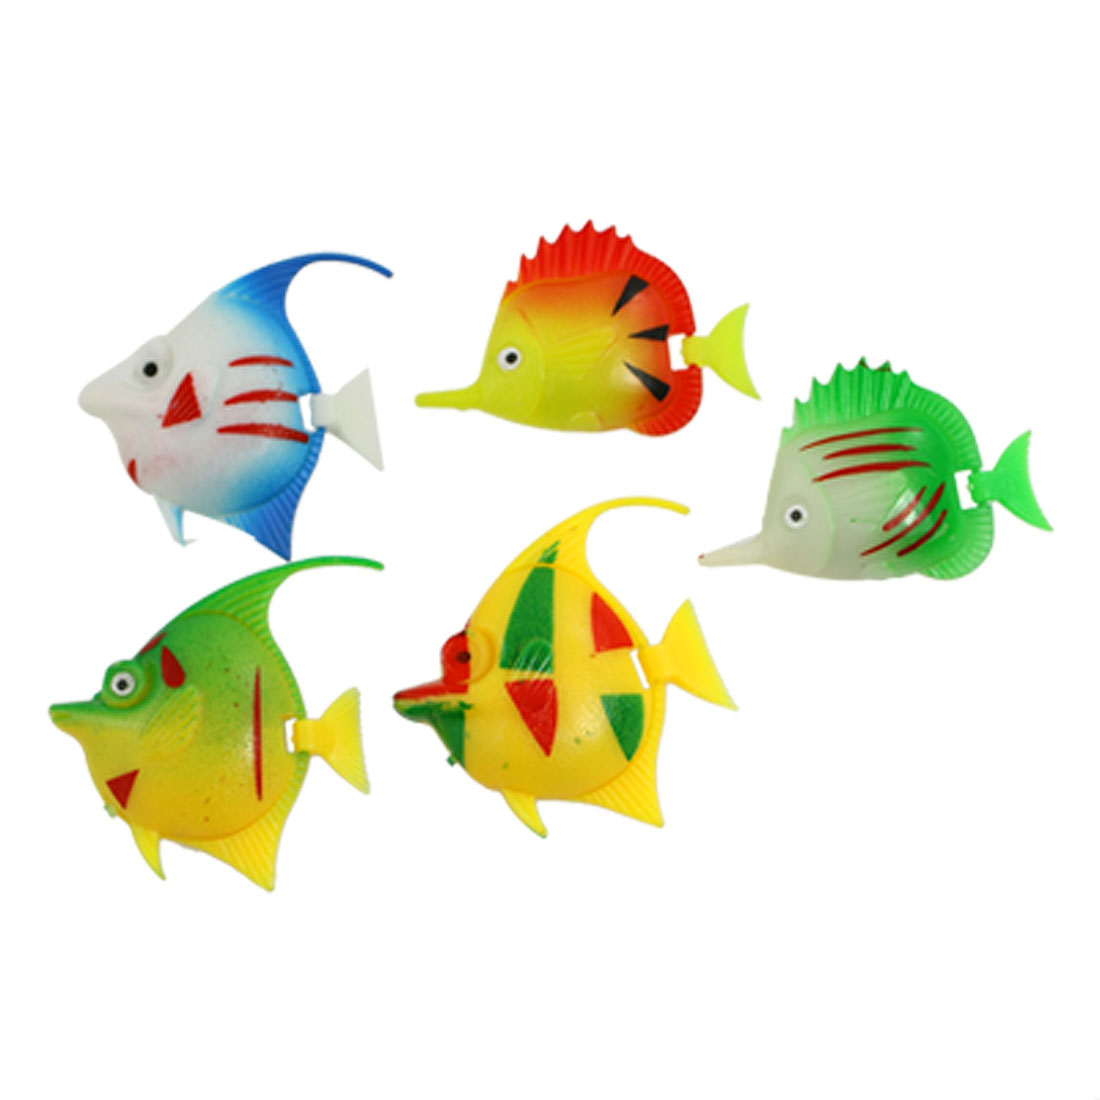 5 Pcs Colorful Plastic Decorative Fish for Aquarium